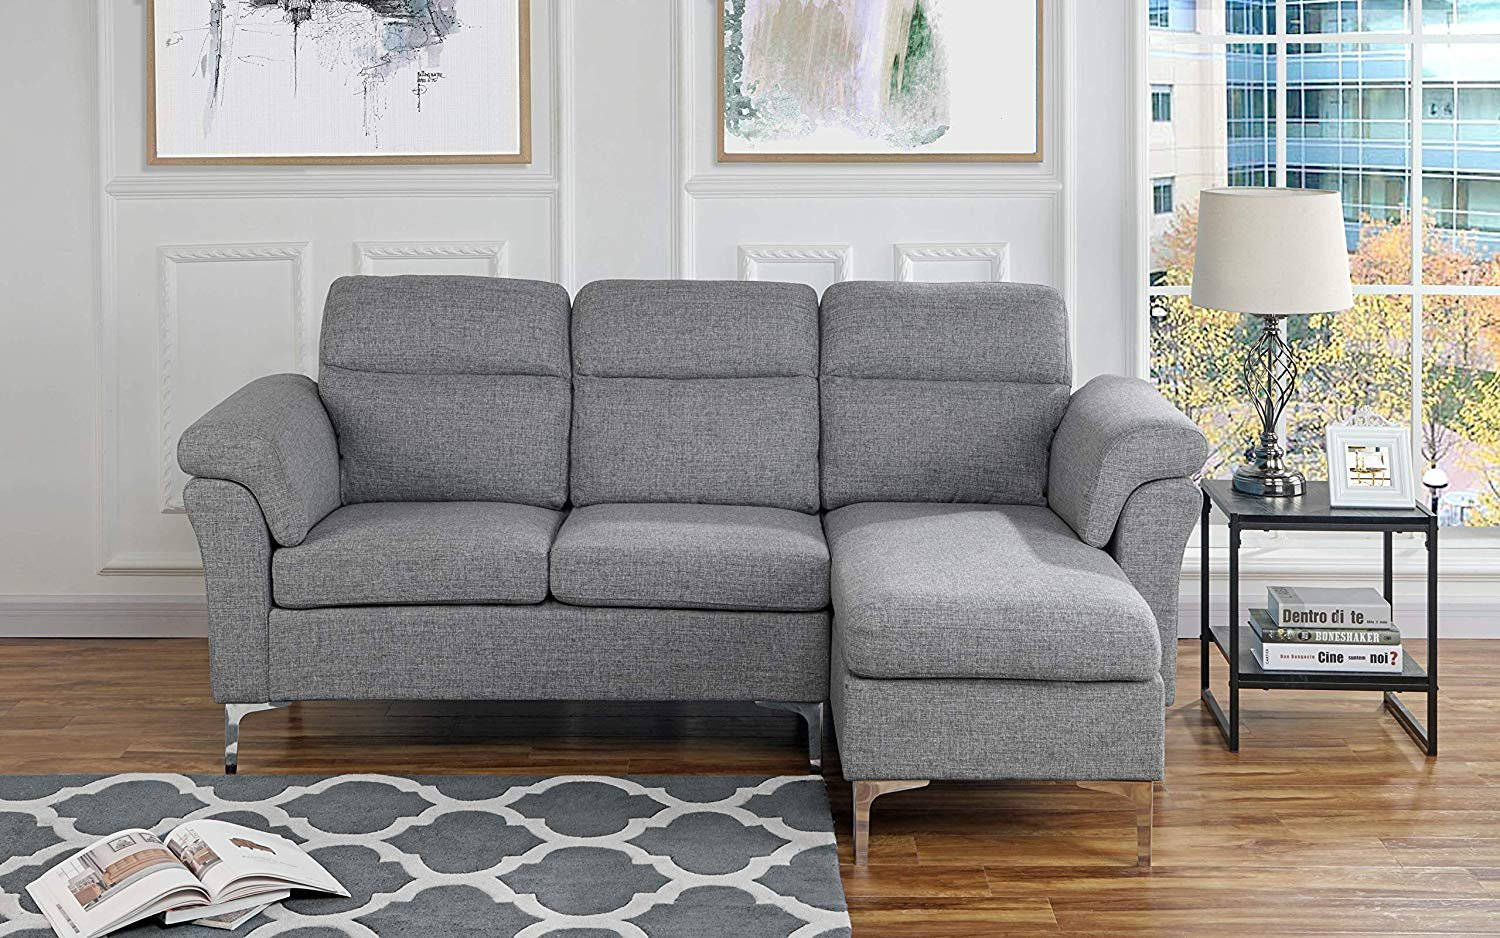 Details about Contemporary Linen Fabric Sectional Sofa, Small Space Couch,  Light Grey